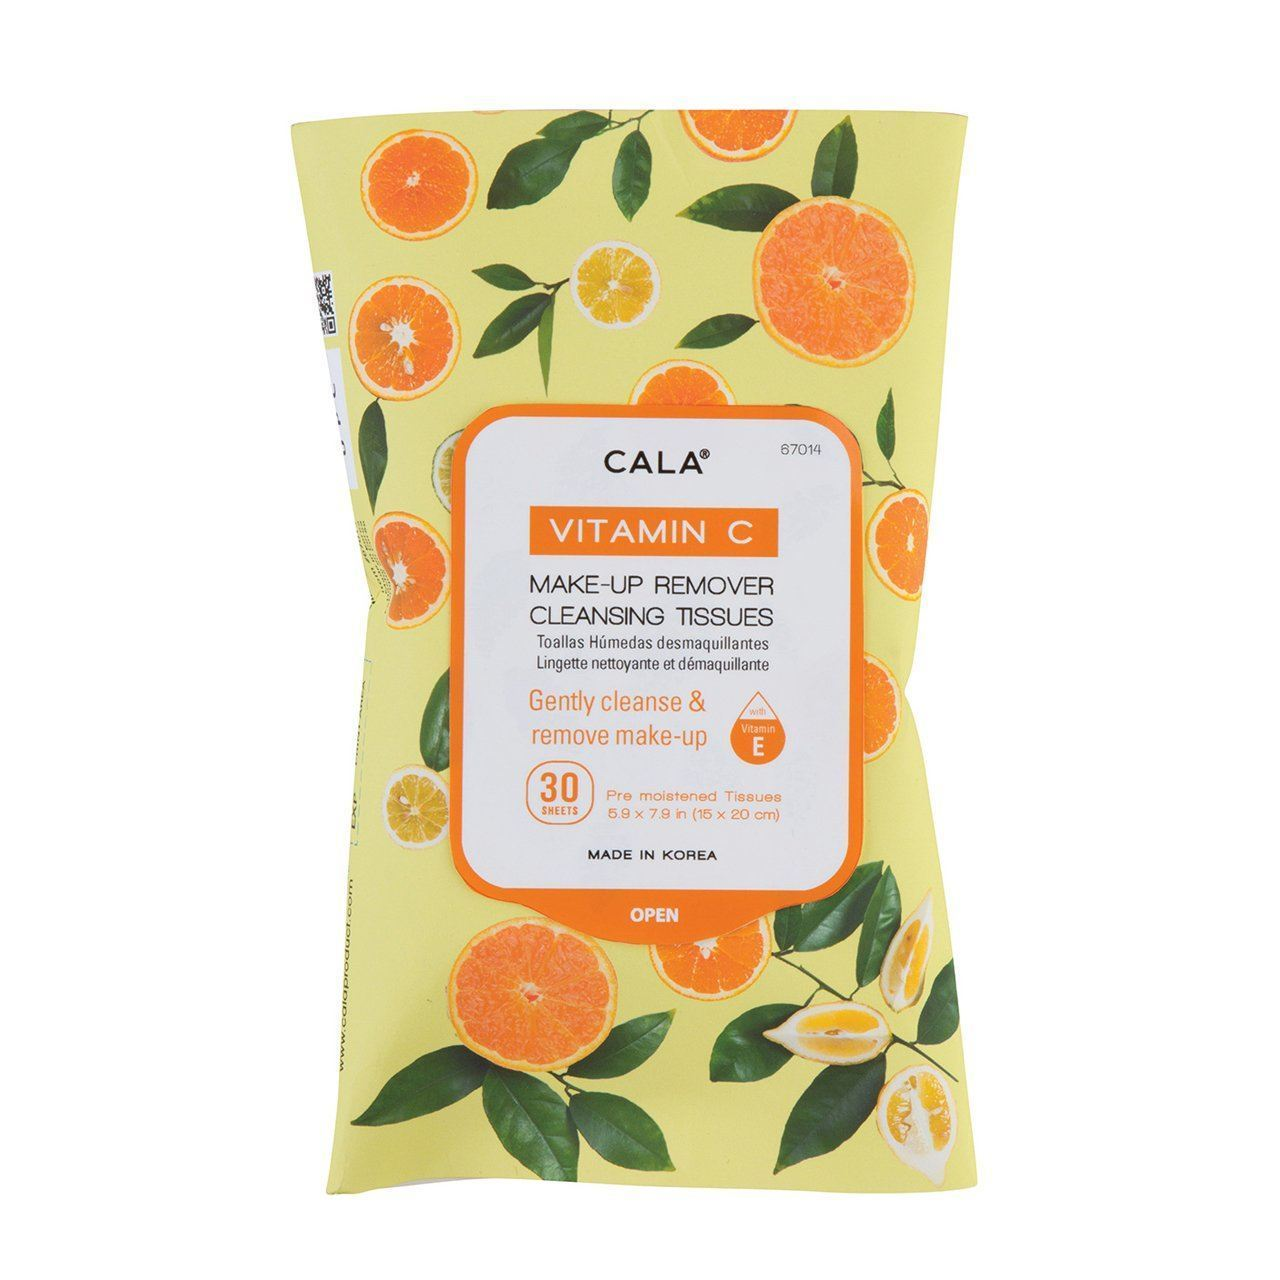 Cala Vitamin C Makeup Remover Cleansing Tissues #67014 (6PK)